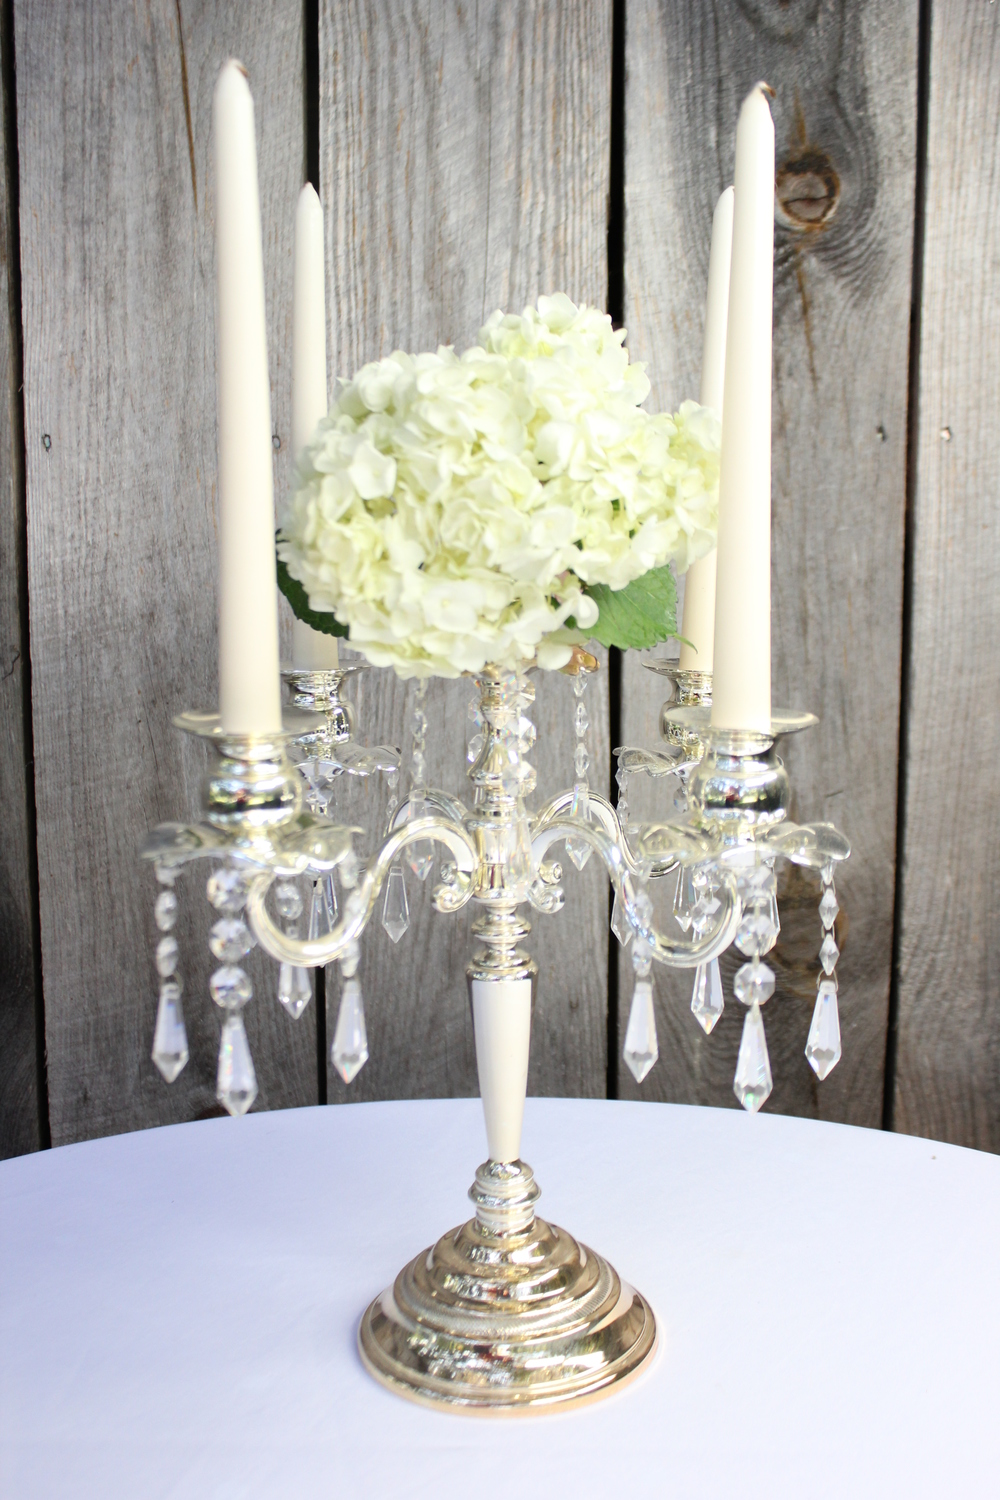 Candelabras                             Platinum - Silver - White - Black - Gold Several Styles / Sizes -  $8 - $15 each